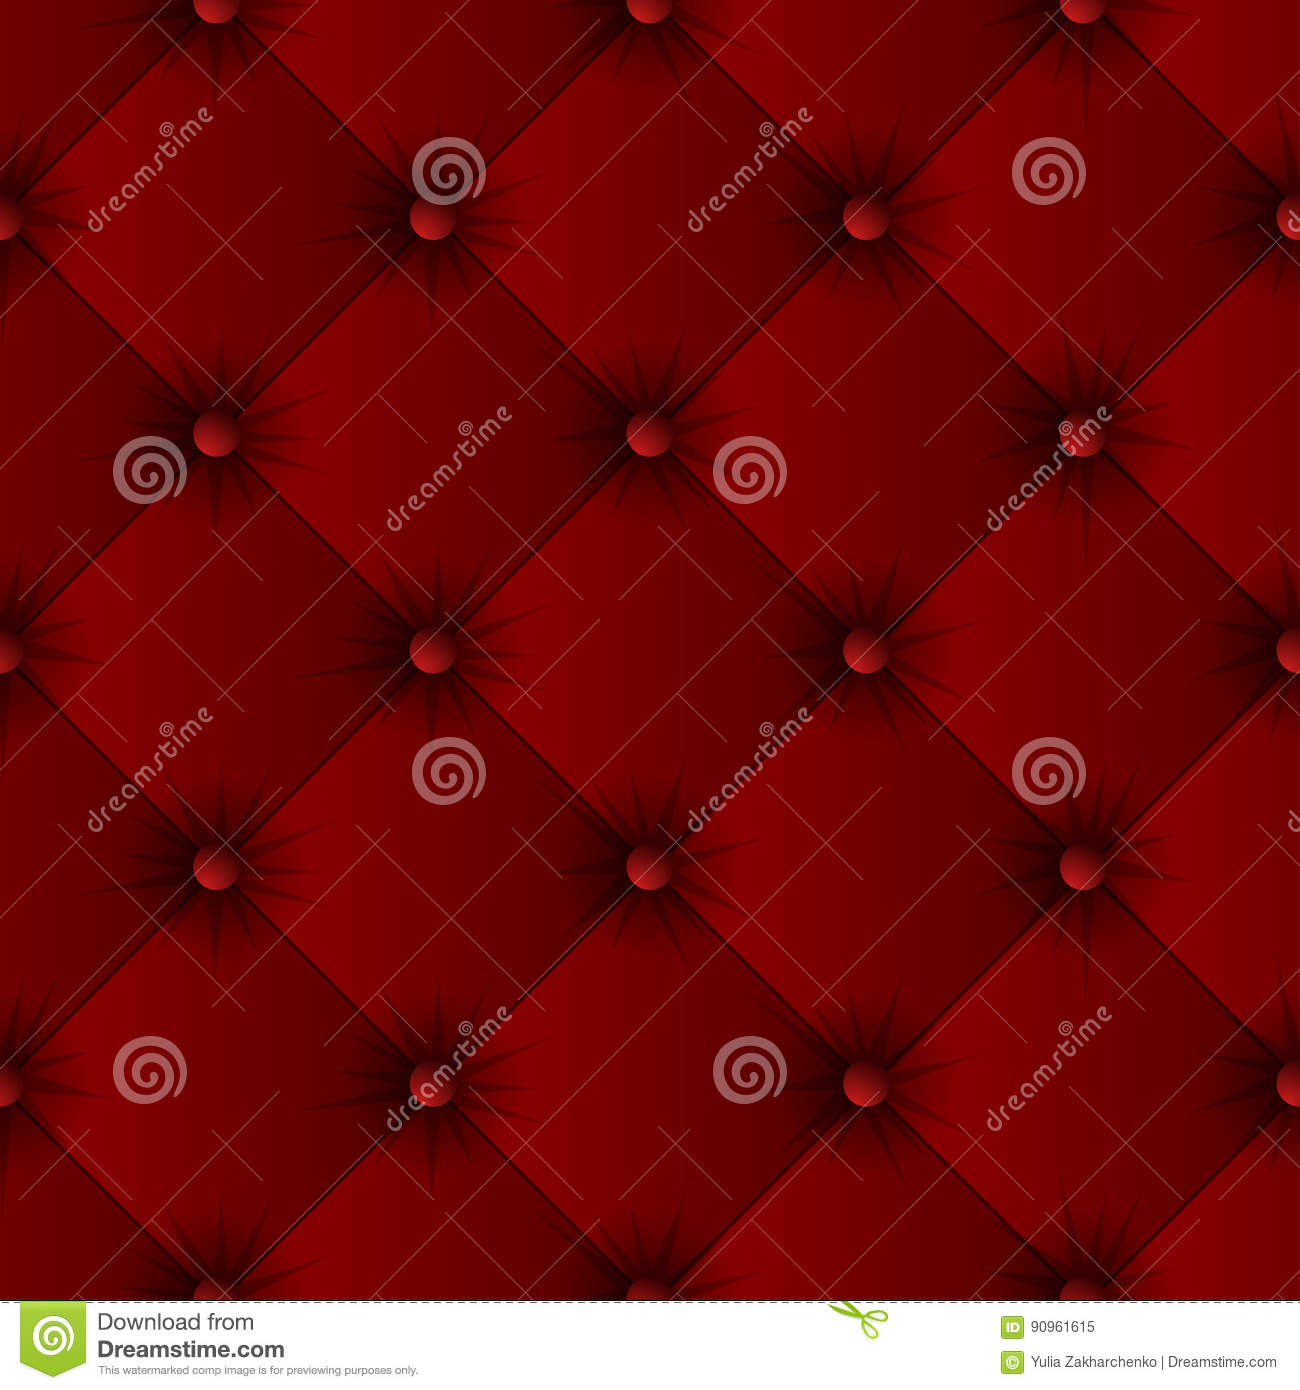 Sofa Texture Vector Red Sofa Texture Seamless Pattern Stock Vector Illustration Of